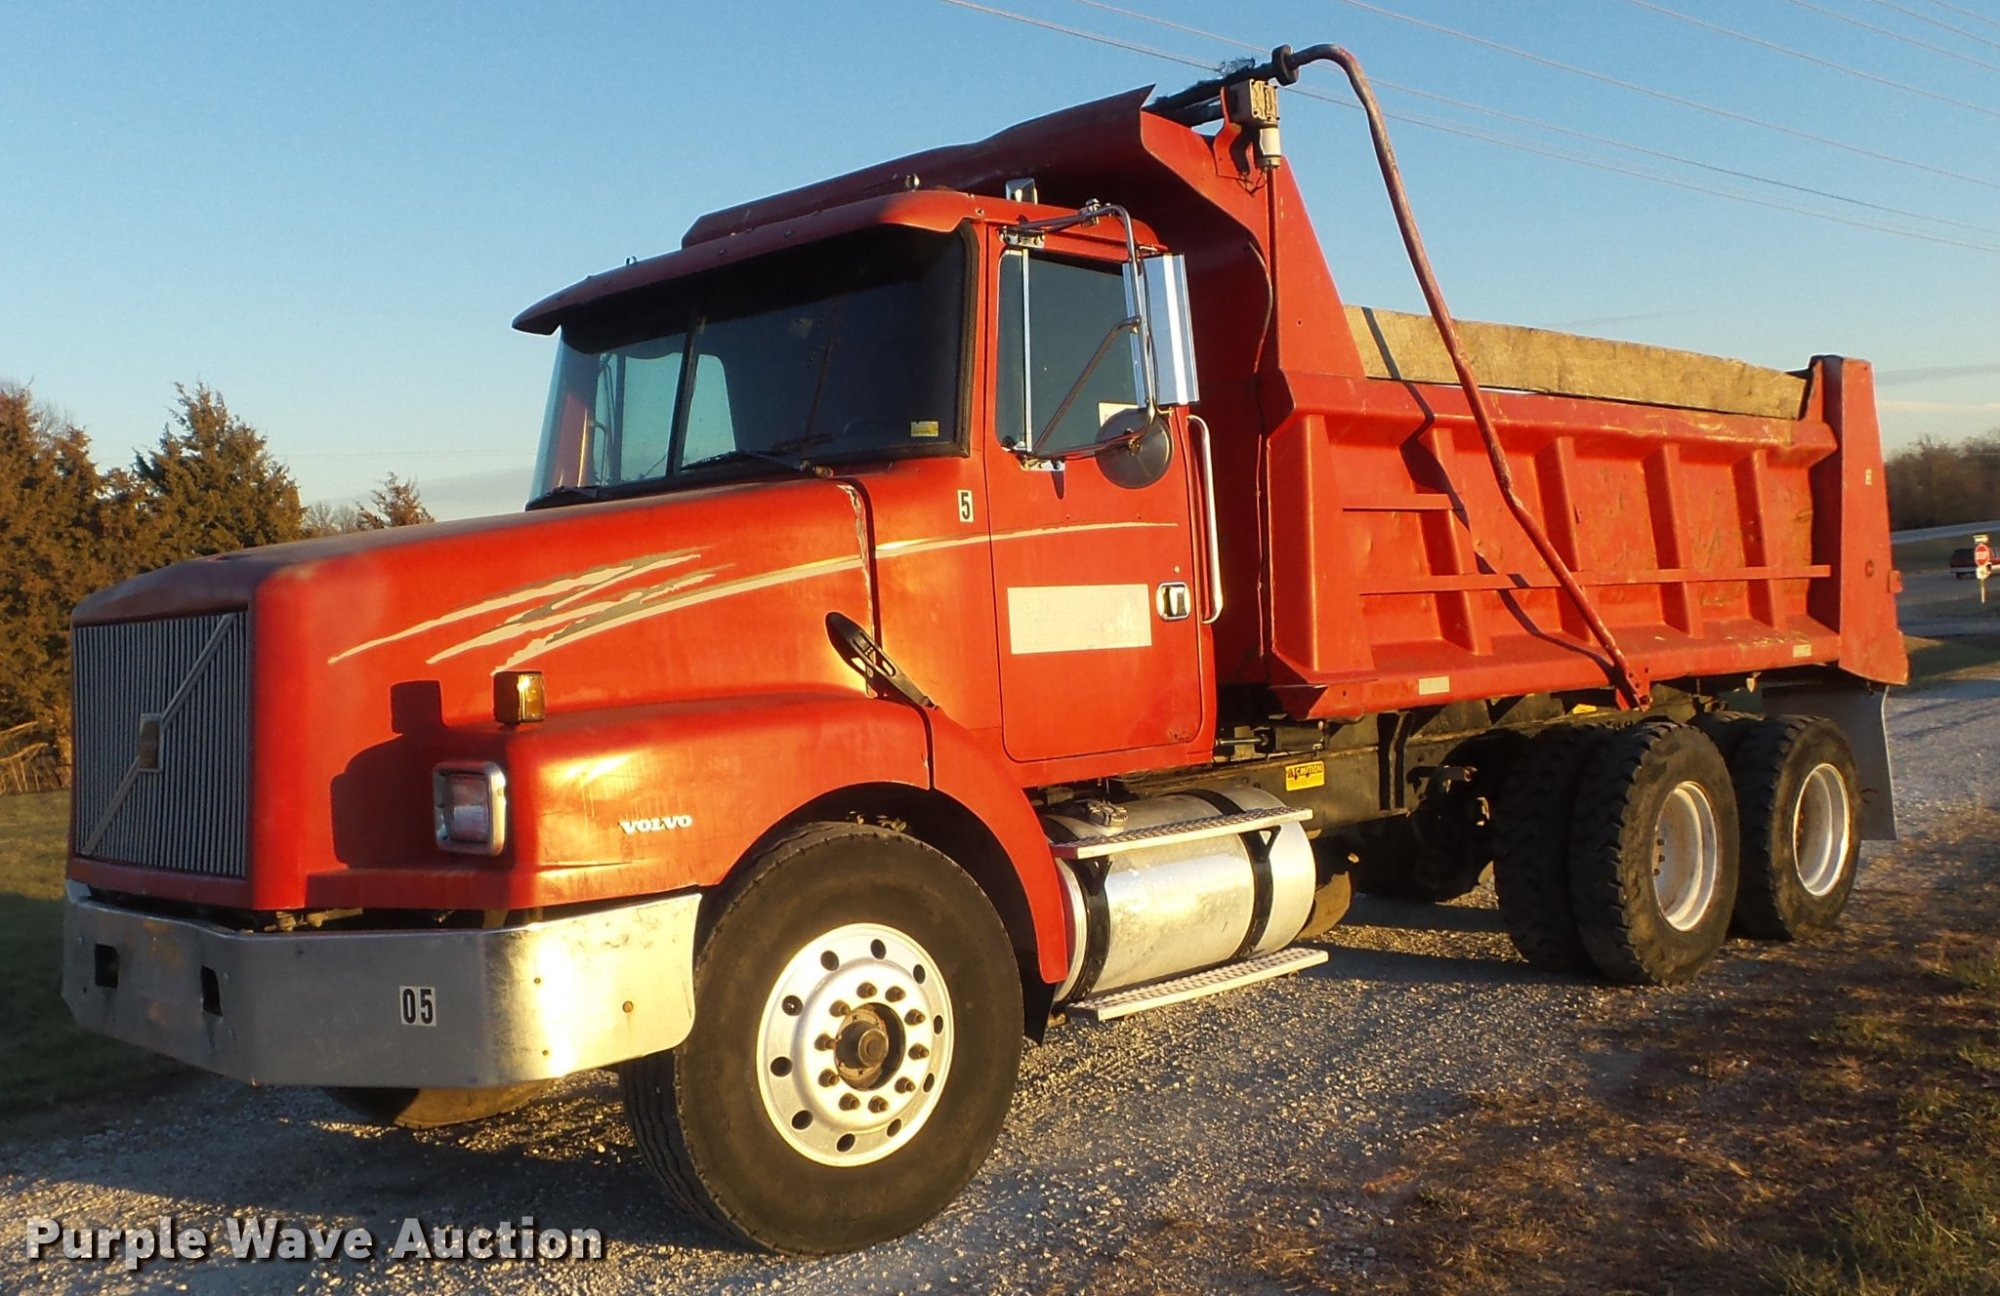 hight resolution of dc7493 image for item dc7493 1999 volvo wg dump truck